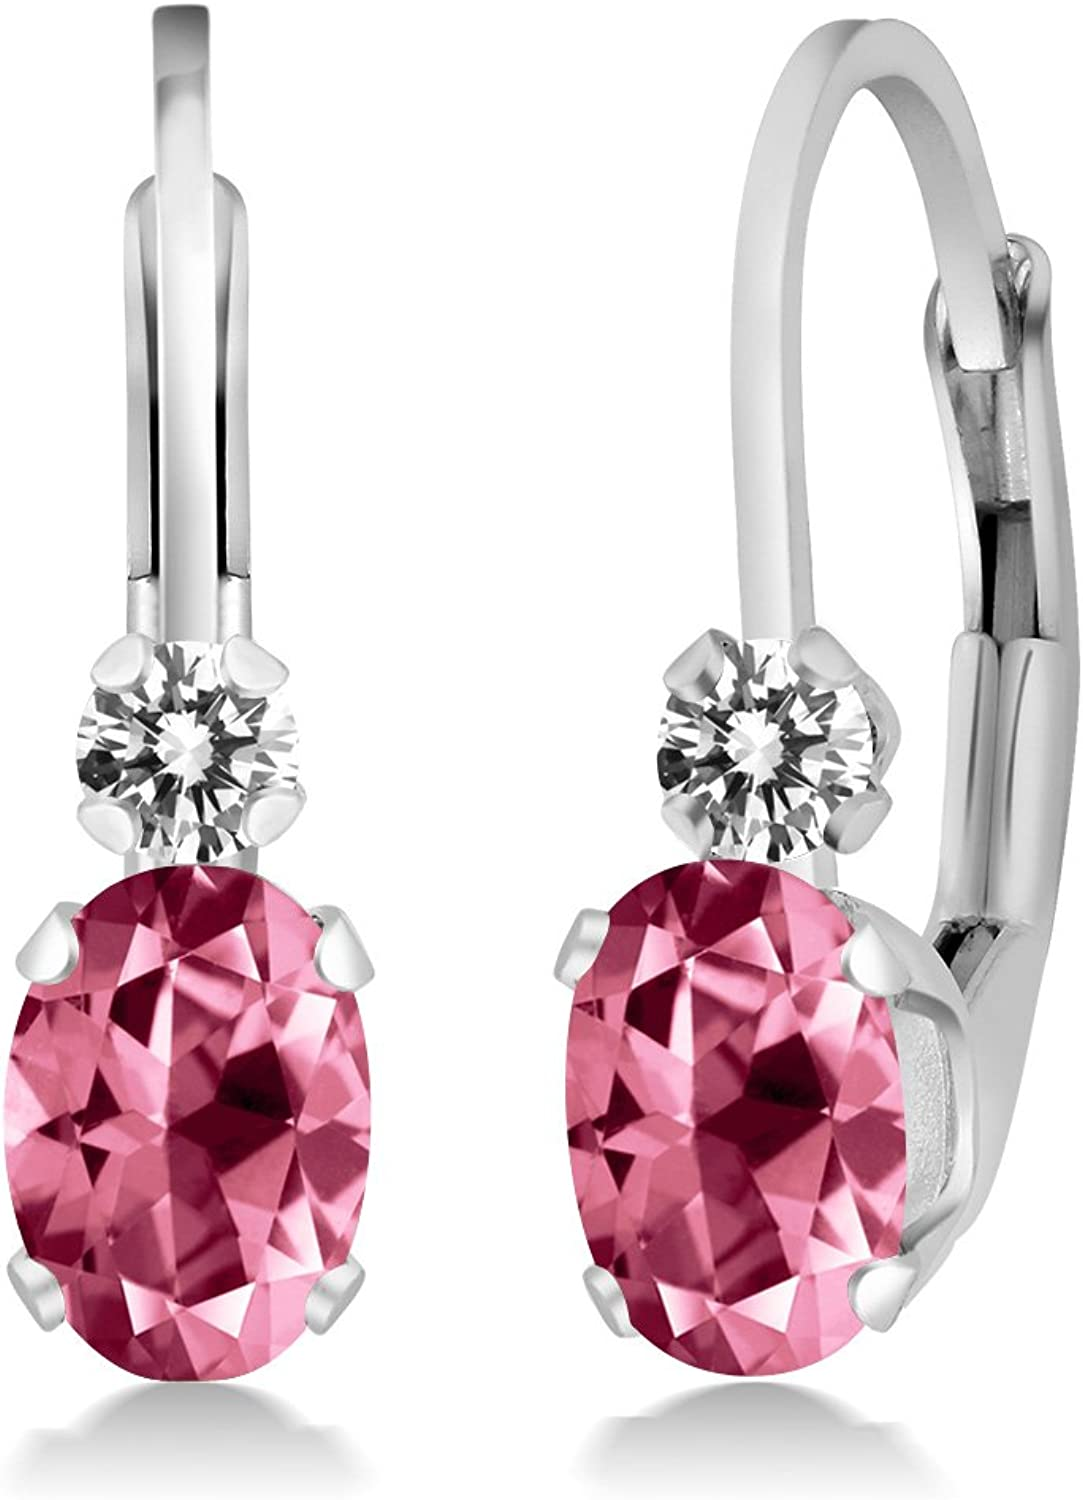 1.07 Ct 925 Sterling Silver Earrings Made With Oval Pink Swarovski Topaz